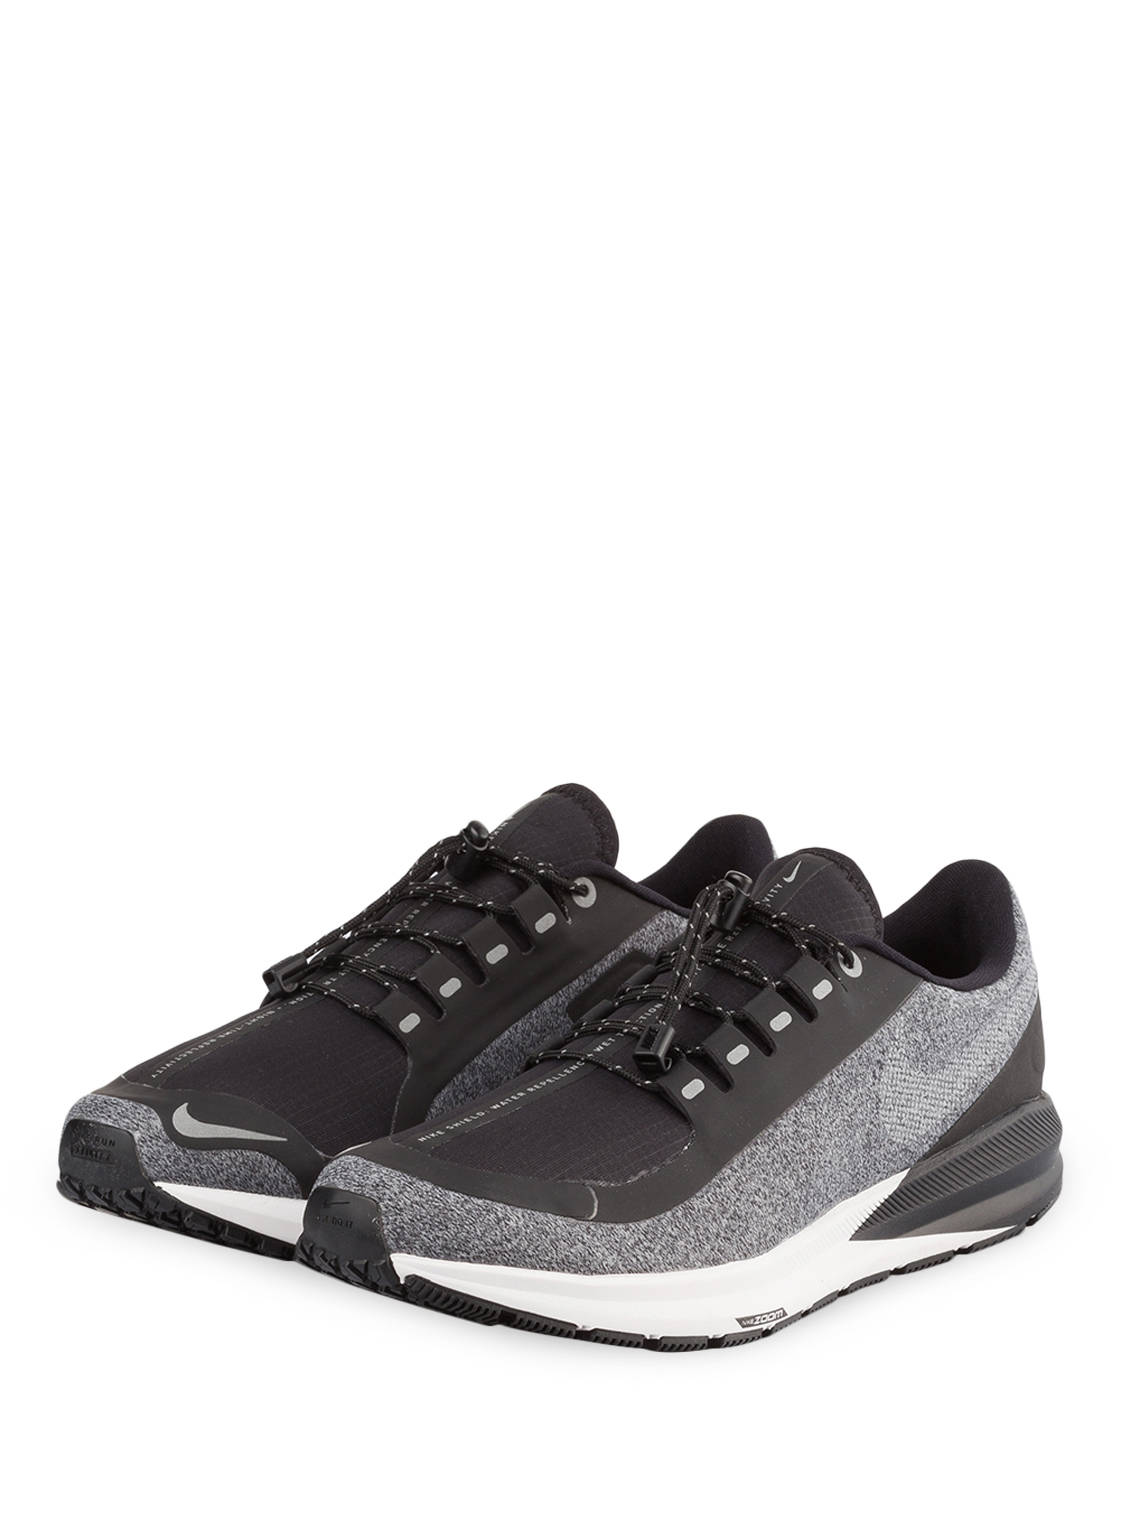 Nike Laufschuhe AIR ZOOM STRUCTURE 22 SHIELD